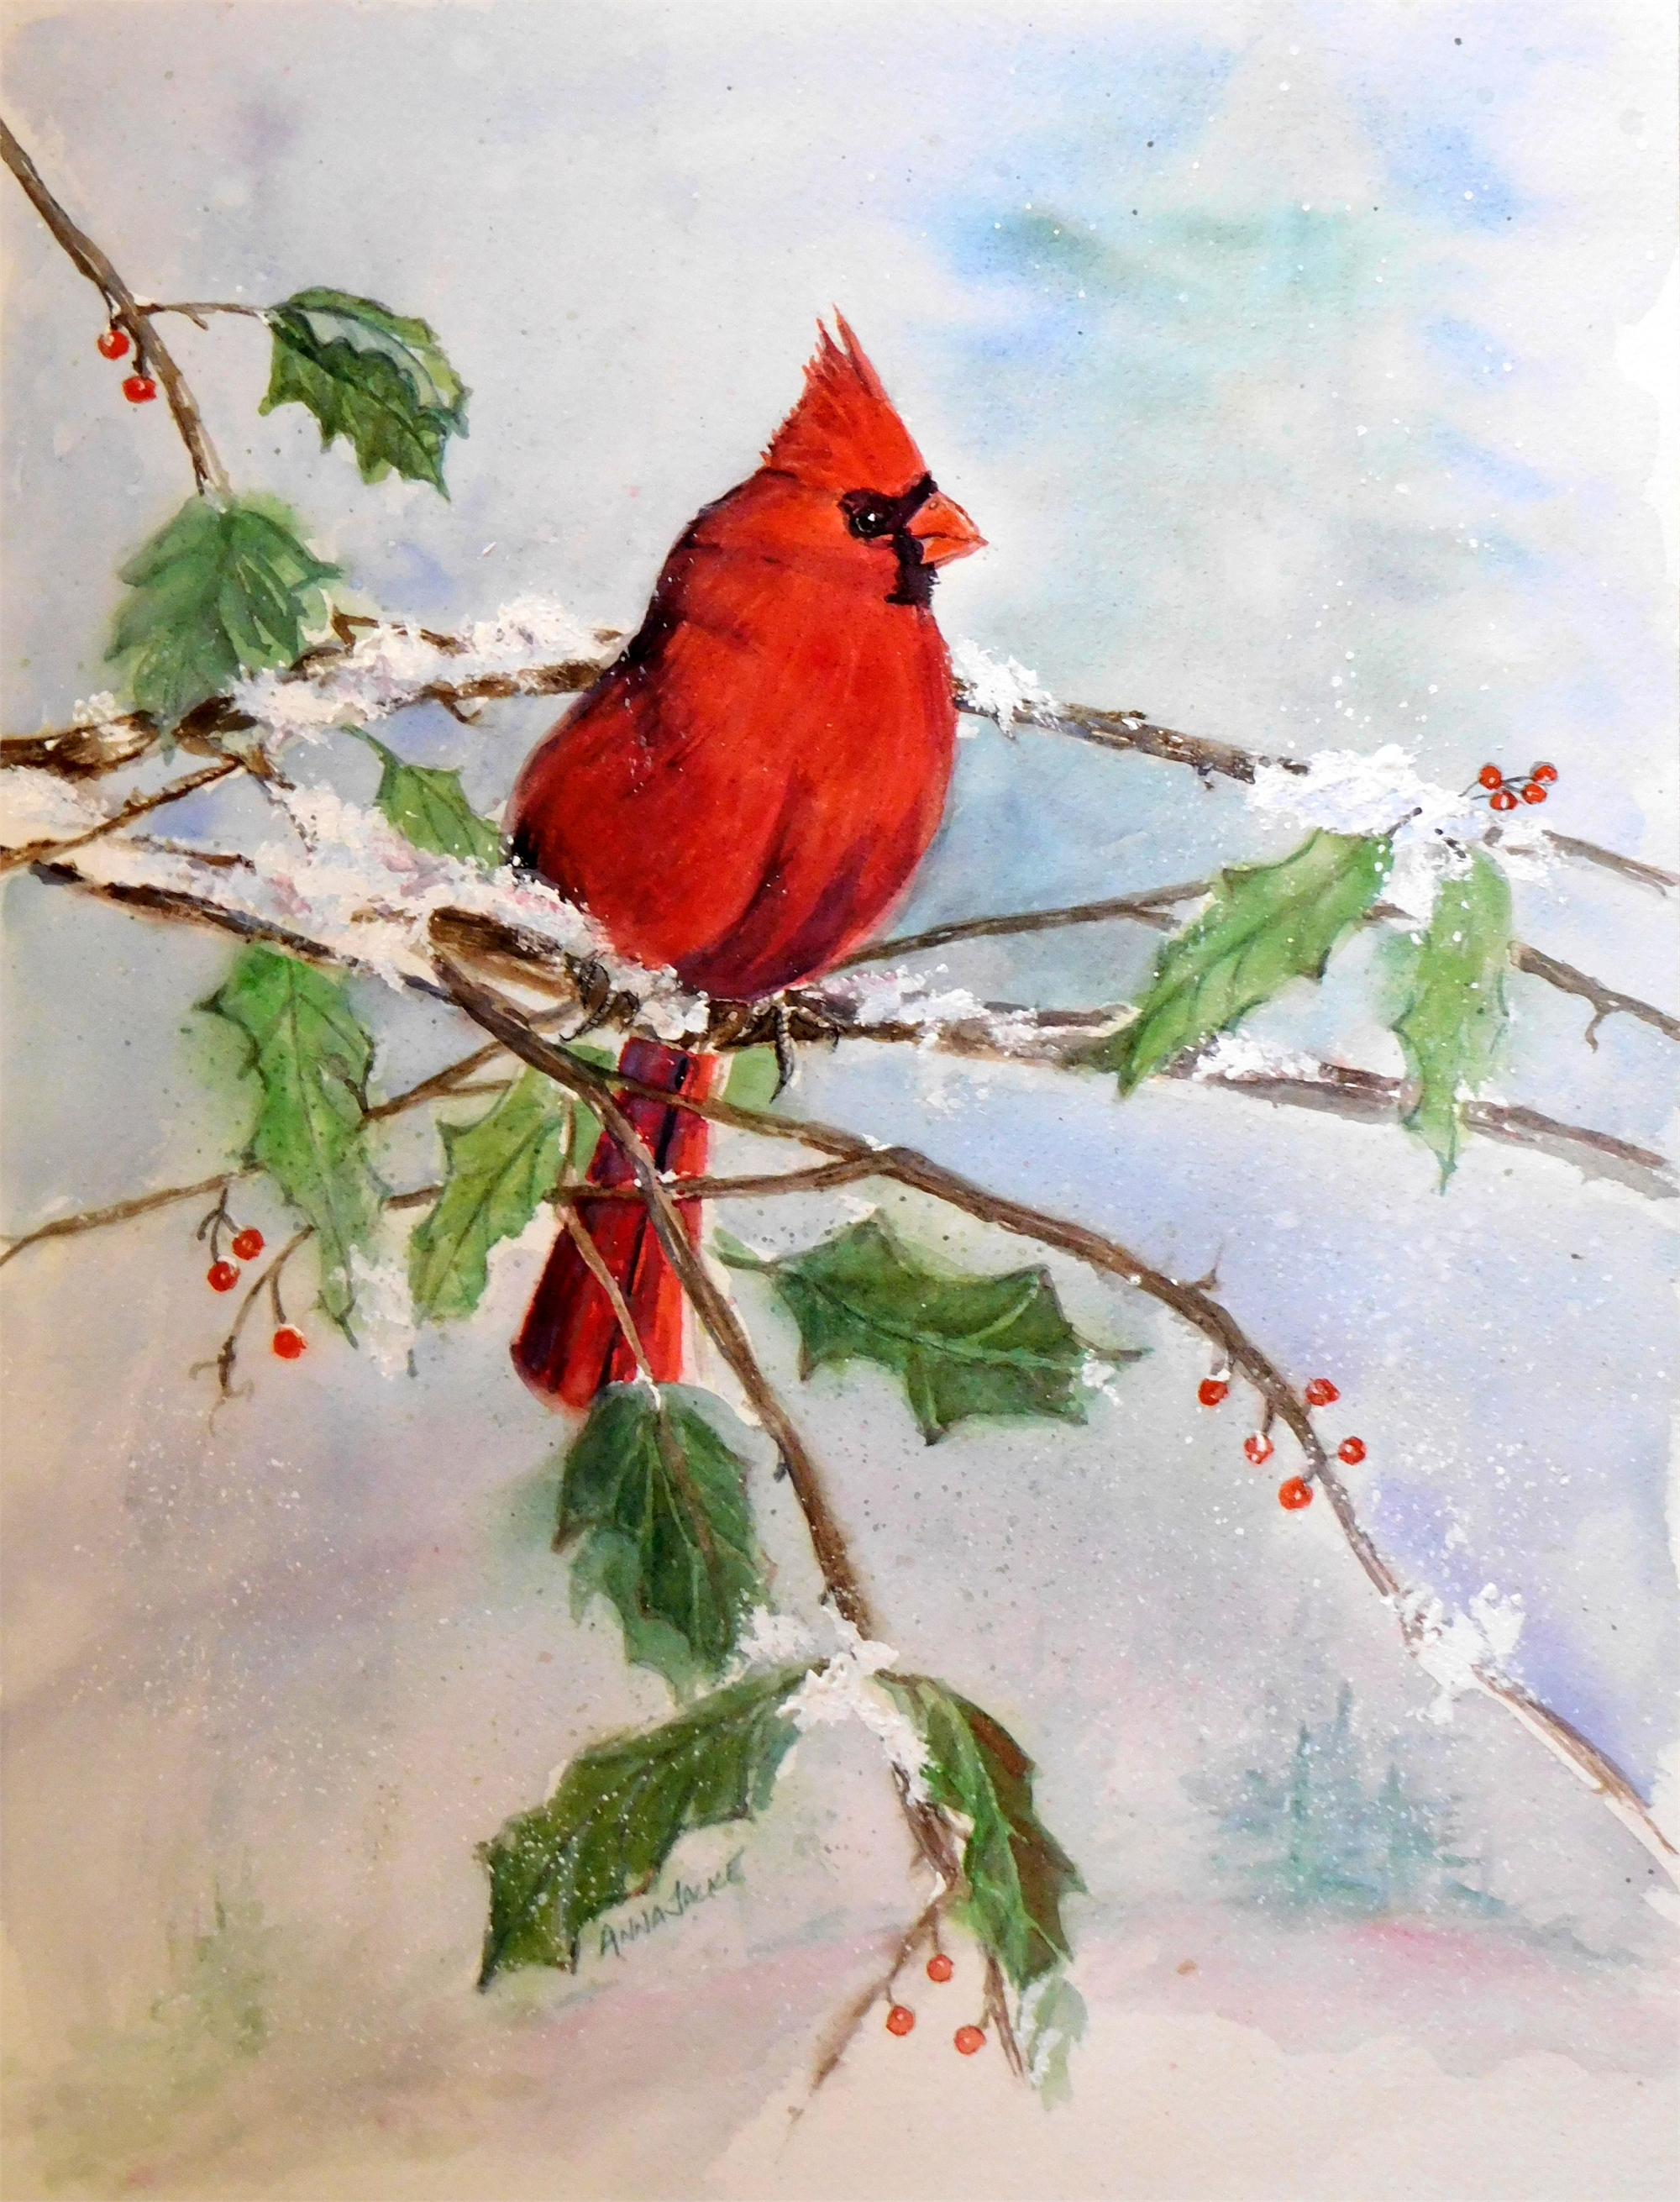 On A Snowy Perch by Anna Jacke (McMinnville, OR)